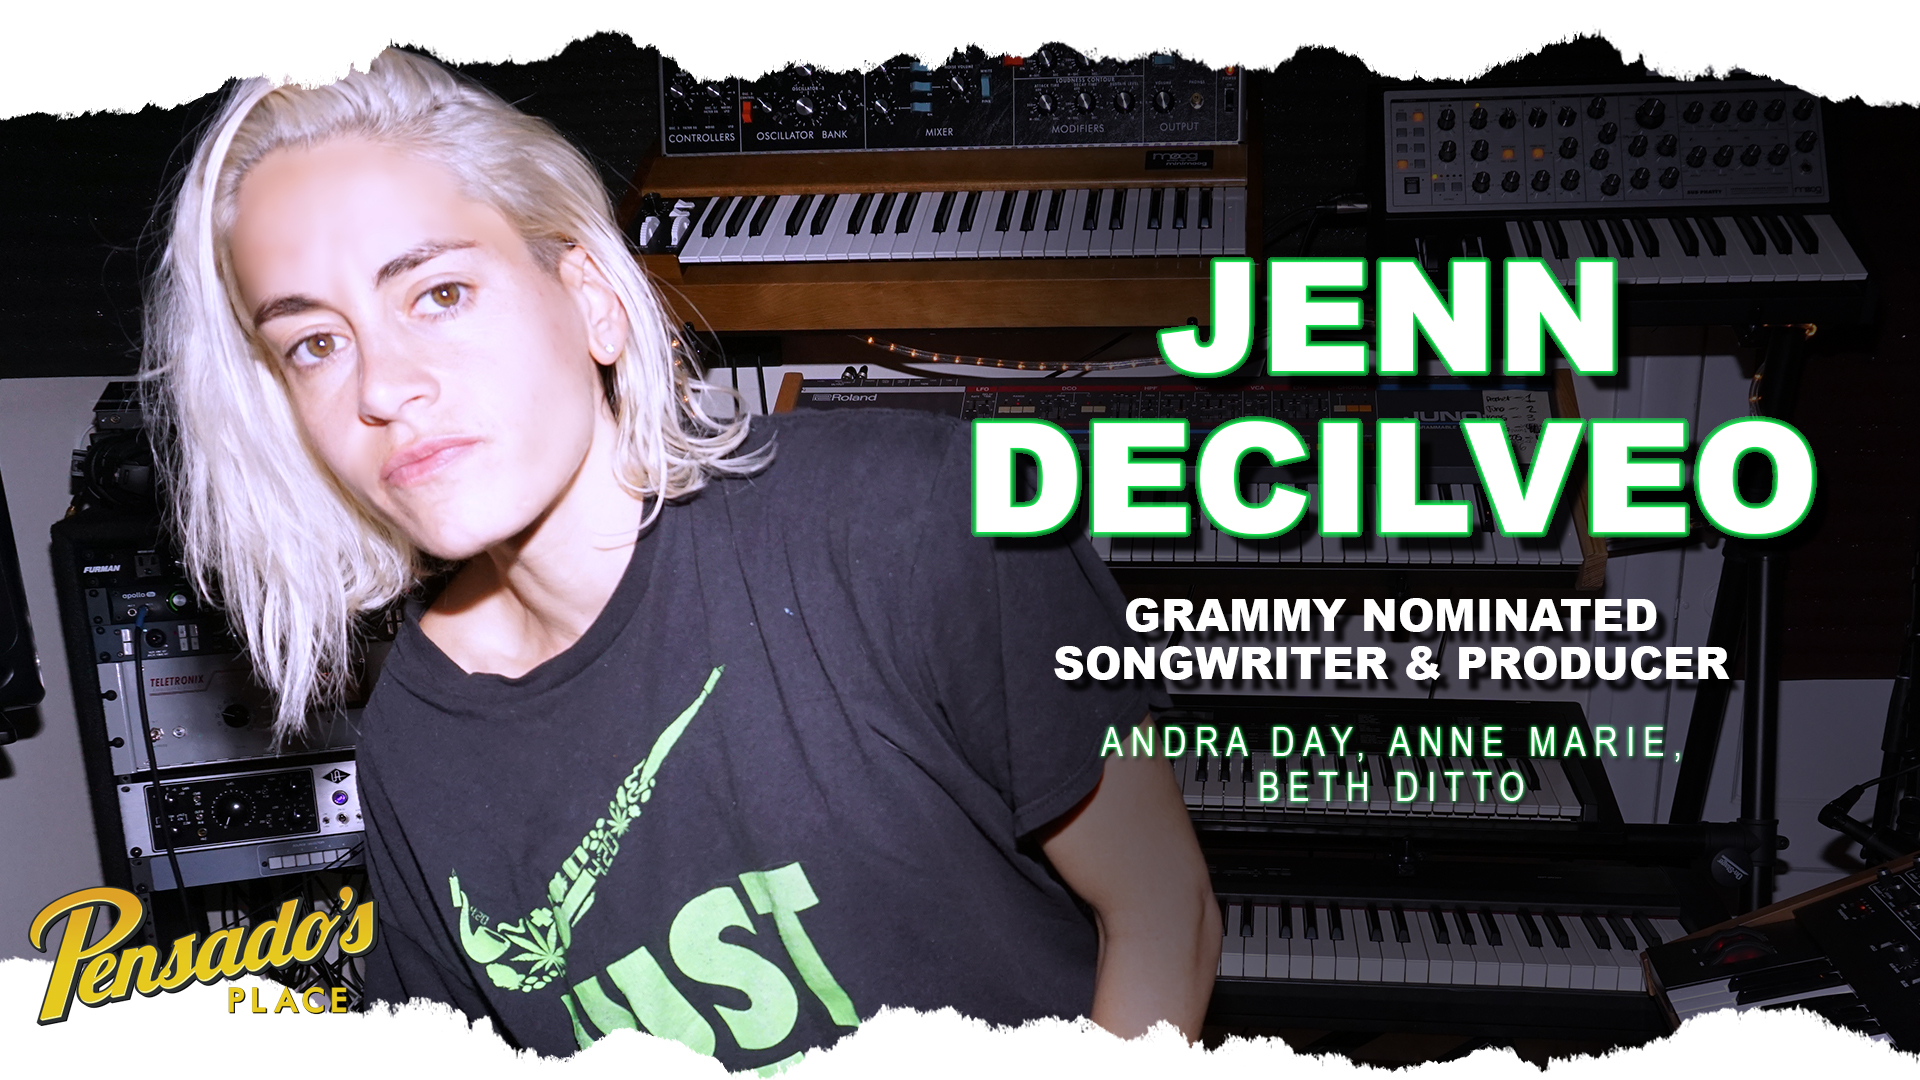 Grammy Nominated Songwriter & Producer, Jenn Decilveo